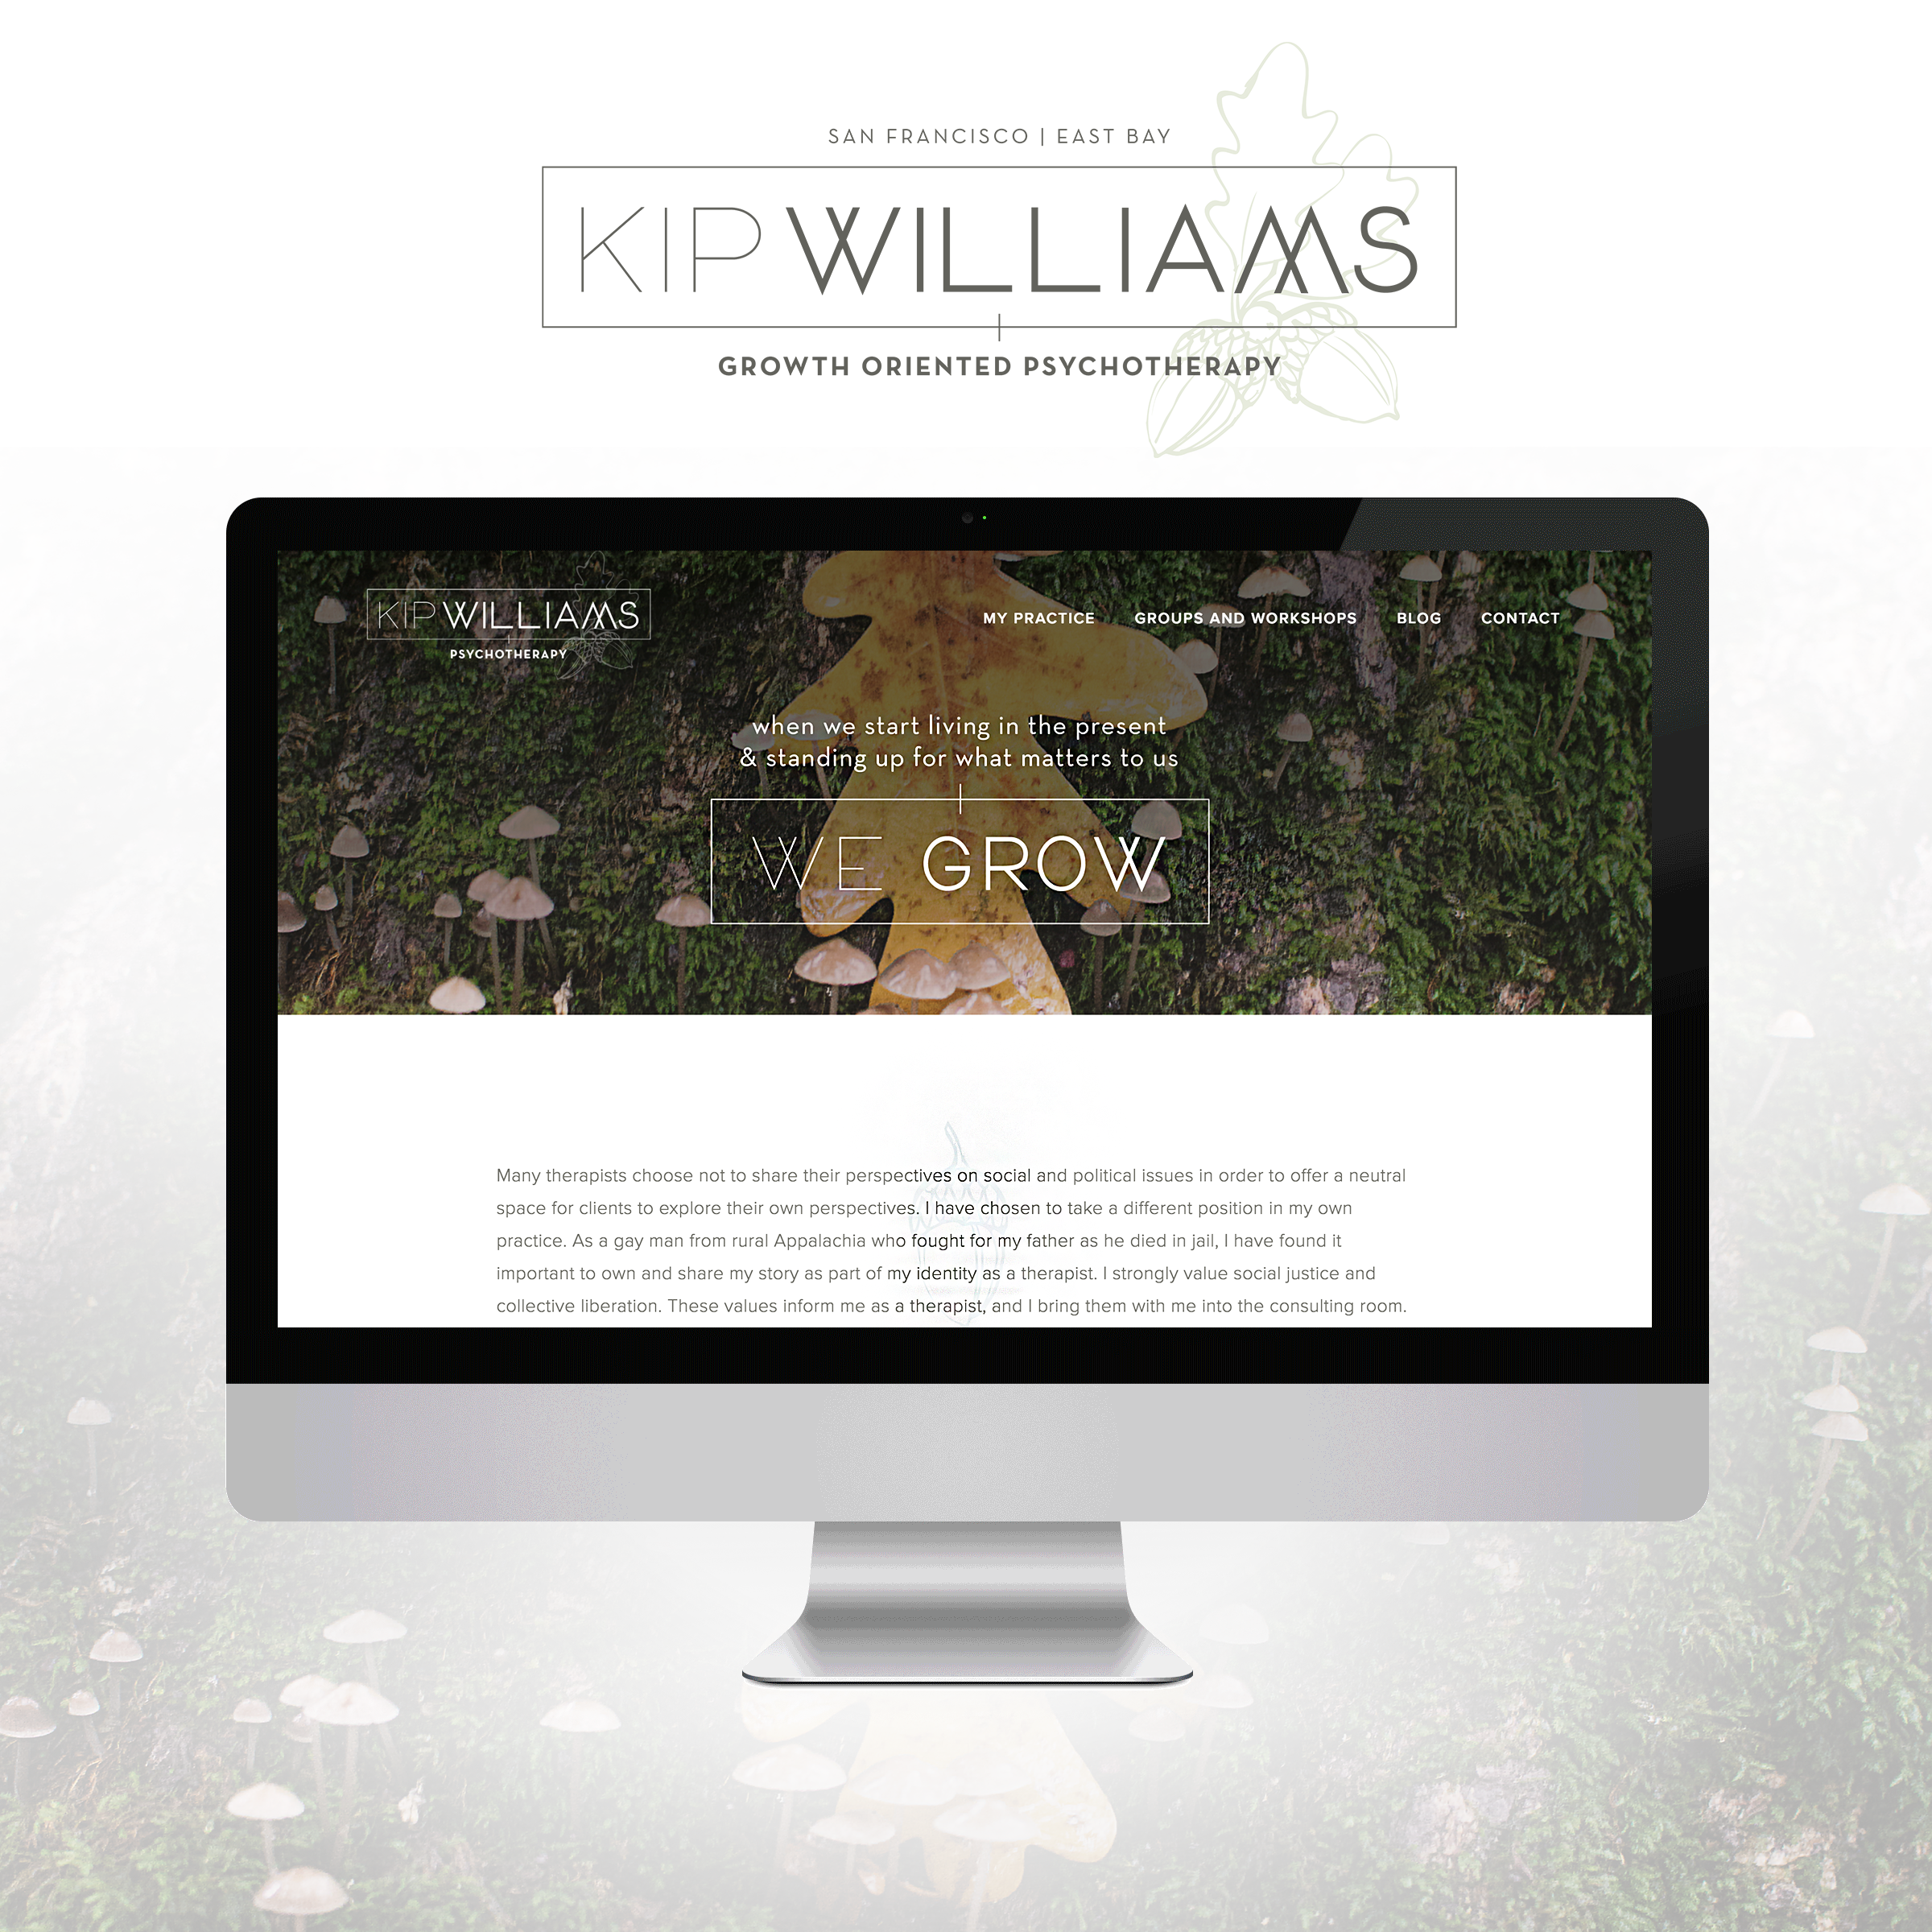 kip-williams-go-live-in-5-psychotherapy-web-design.png